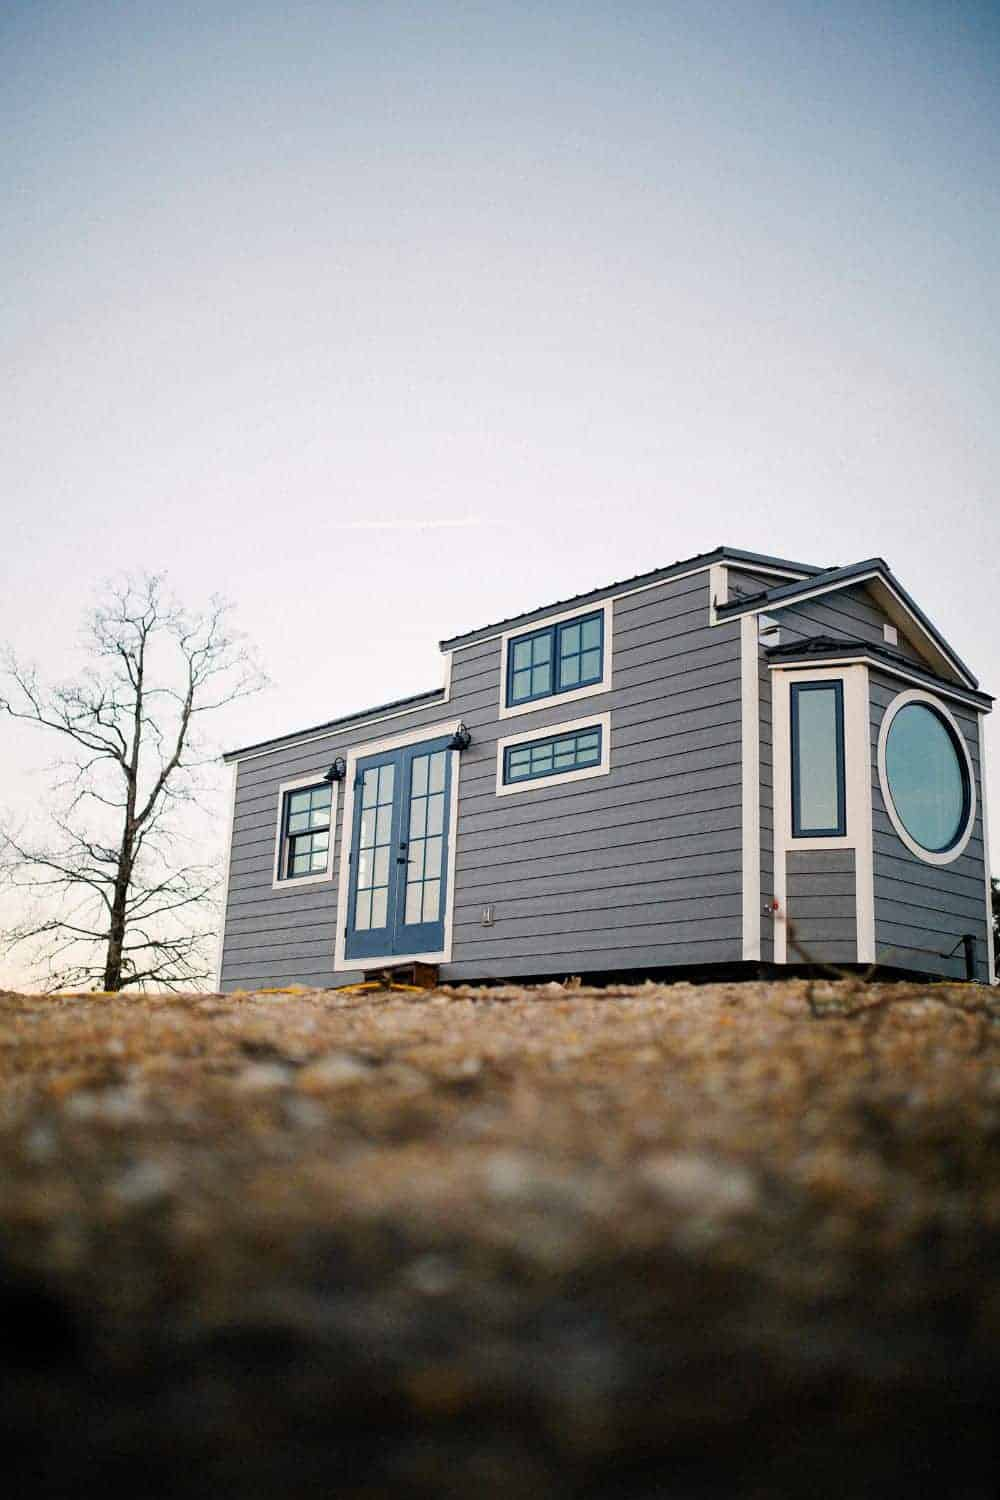 This monocle tiny house offers a modish look and a gray exterior.